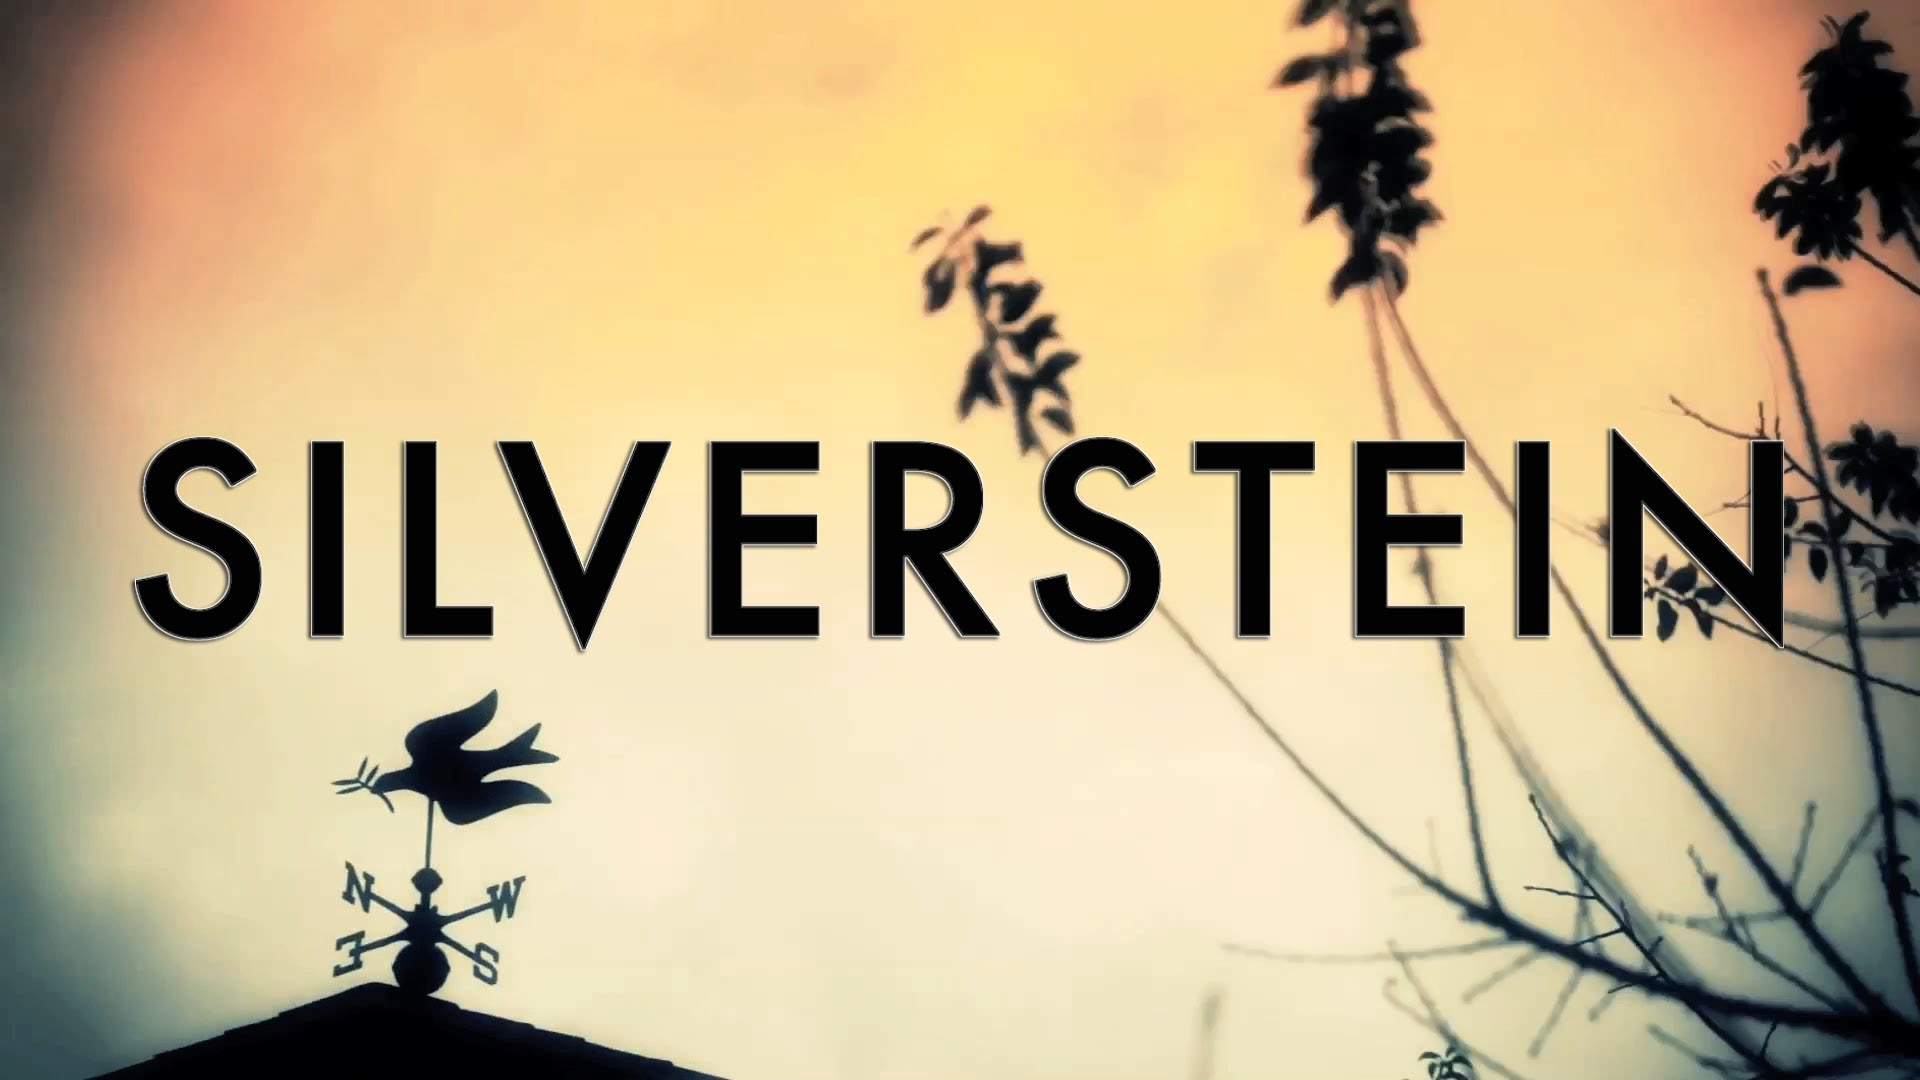 Silverstein Backgrounds, Compatible - PC, Mobile, Gadgets| 1920x1080 px